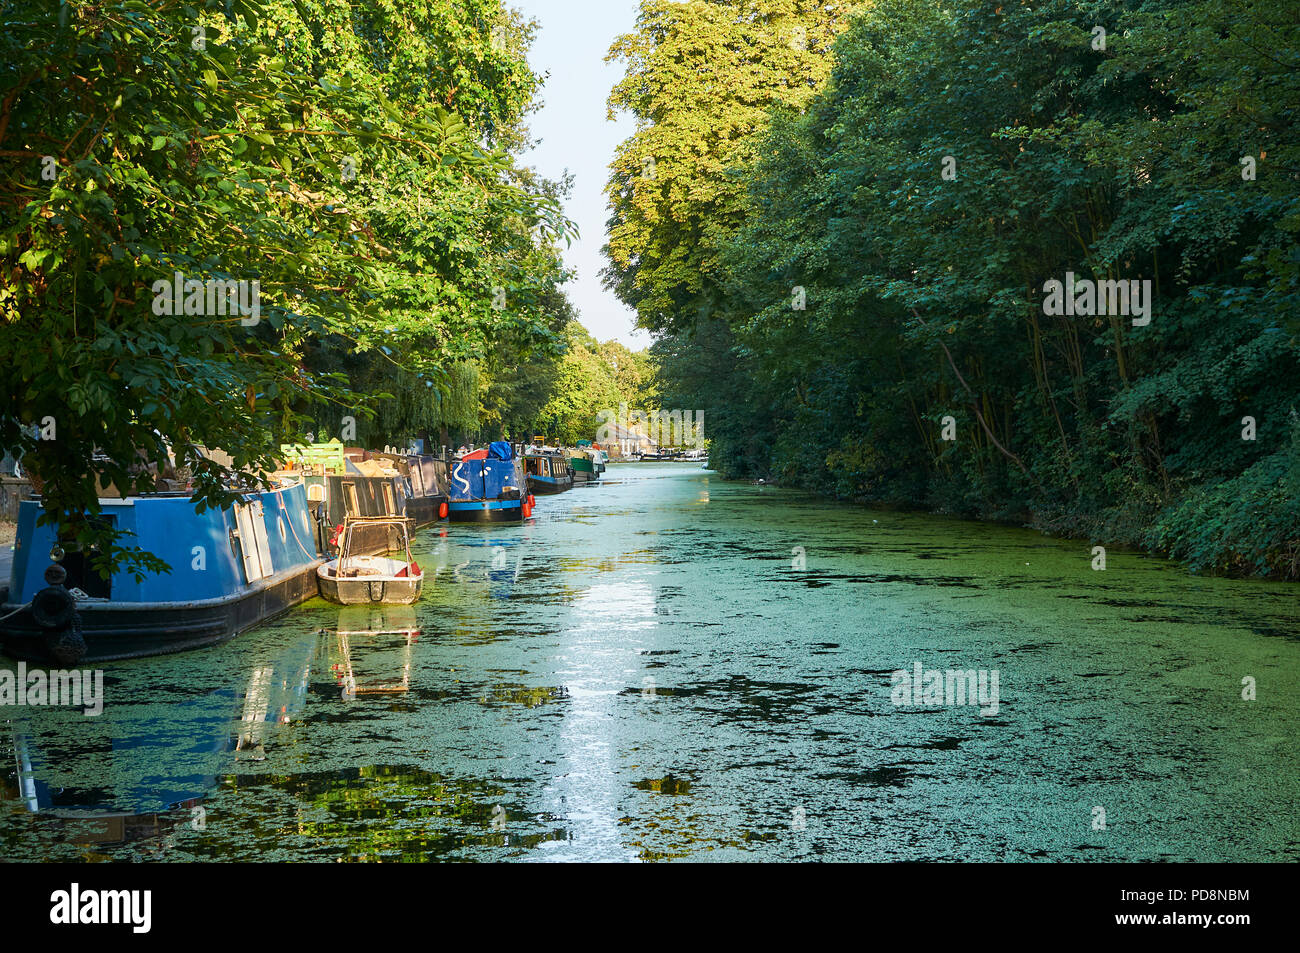 The Regents Canal at Victoria Park, East London, UK, filled with algae, durung the summer 2018 heatwave - Stock Image